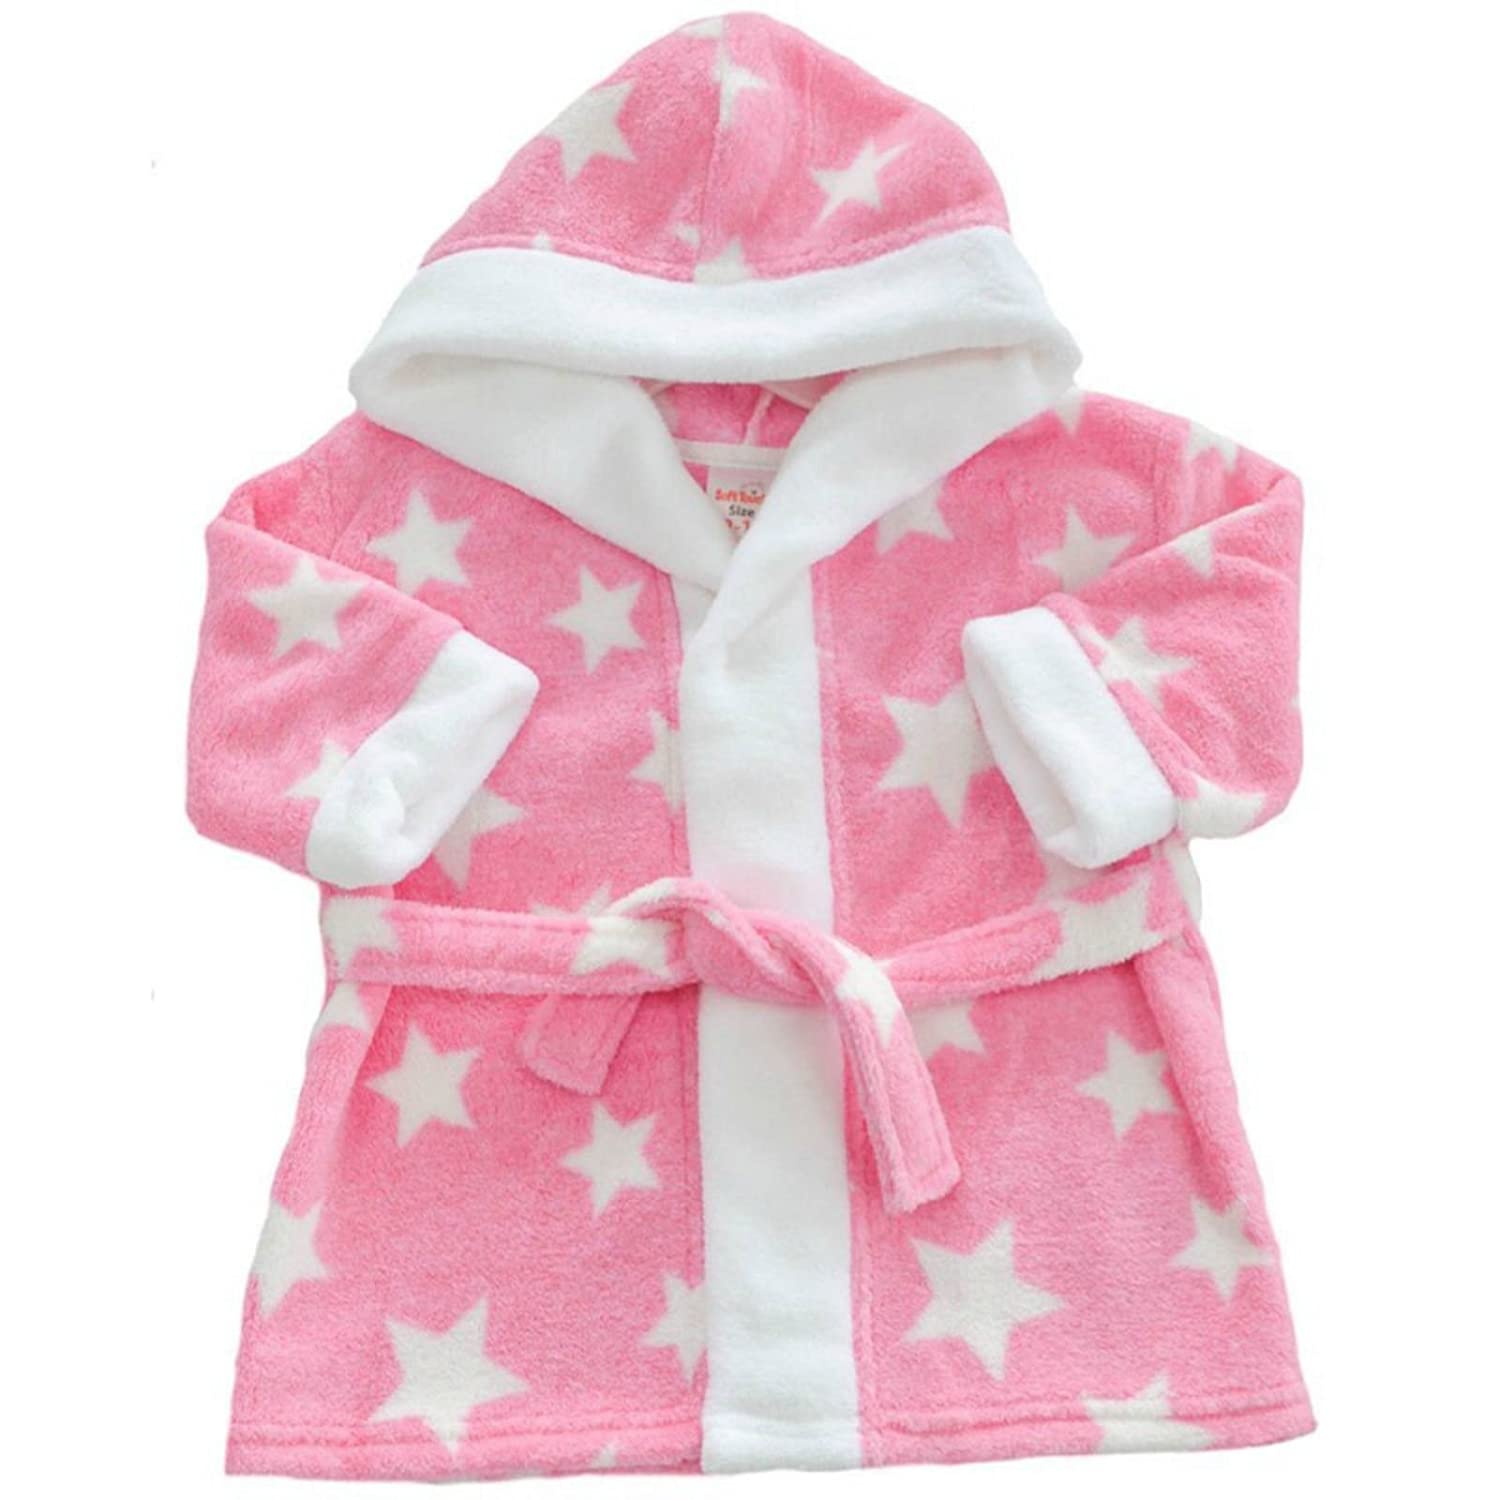 Baby Dressing Gown/Infants Fleece Robe with Hood & Stars - Boys/Girls